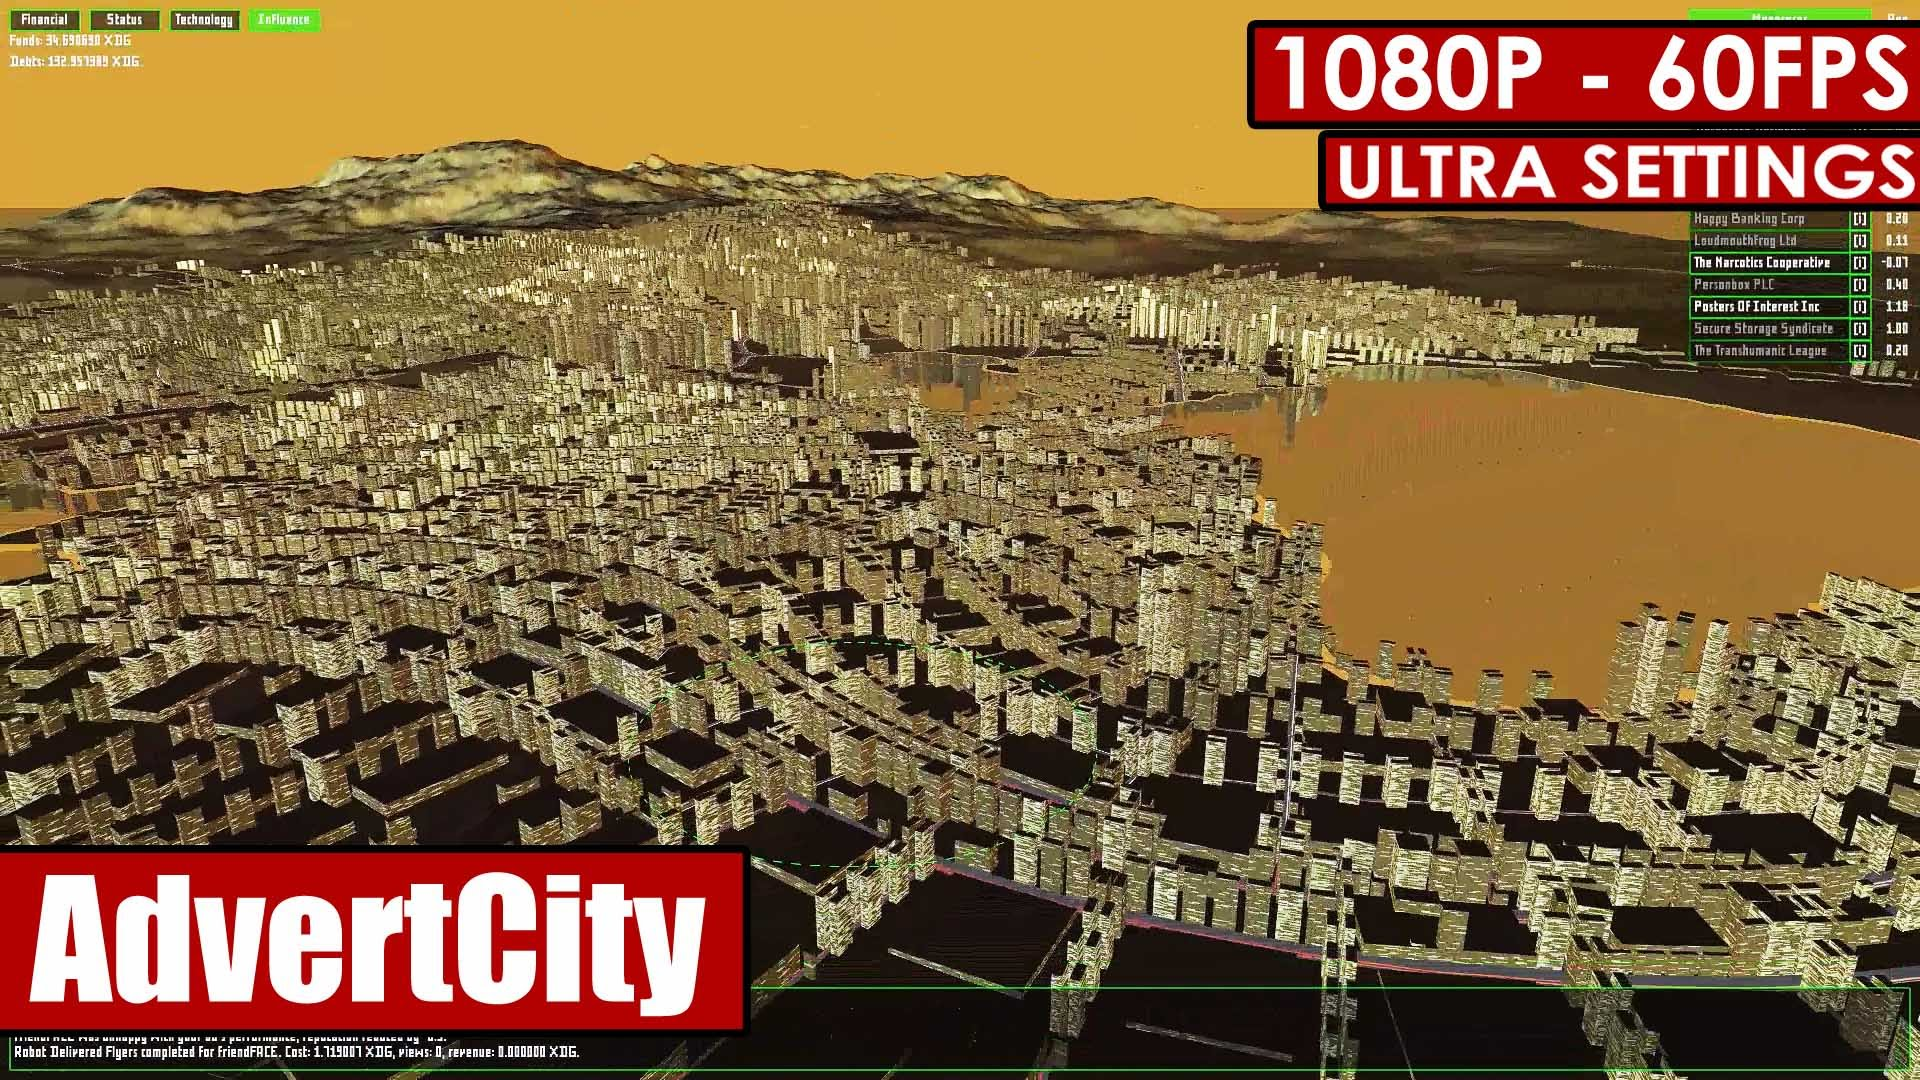 AdvertCity Pics, Video Game Collection